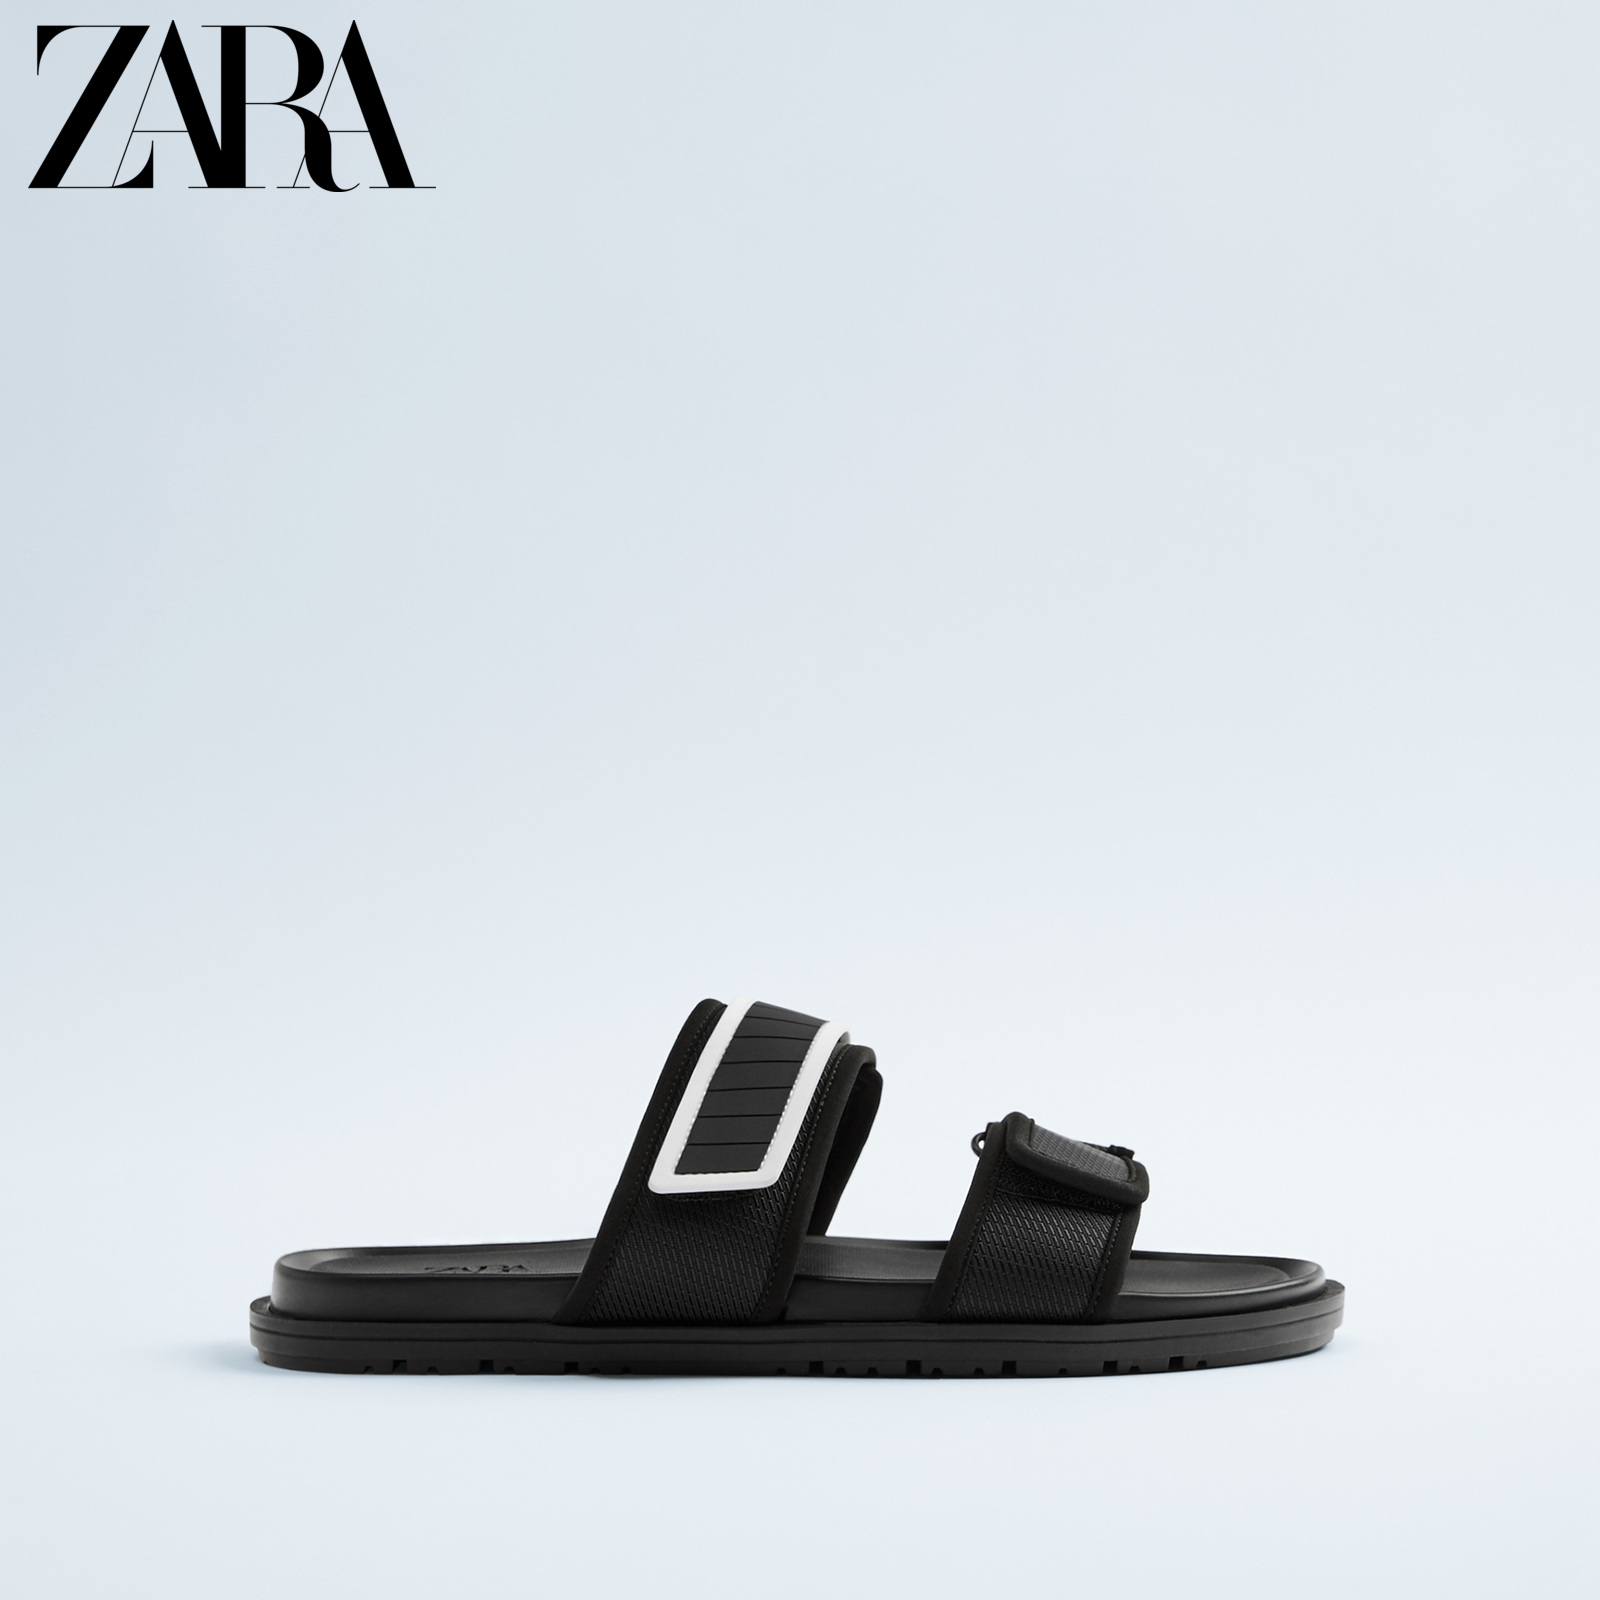 Zara new men's shoes black double belt decorated sandals 12718520040